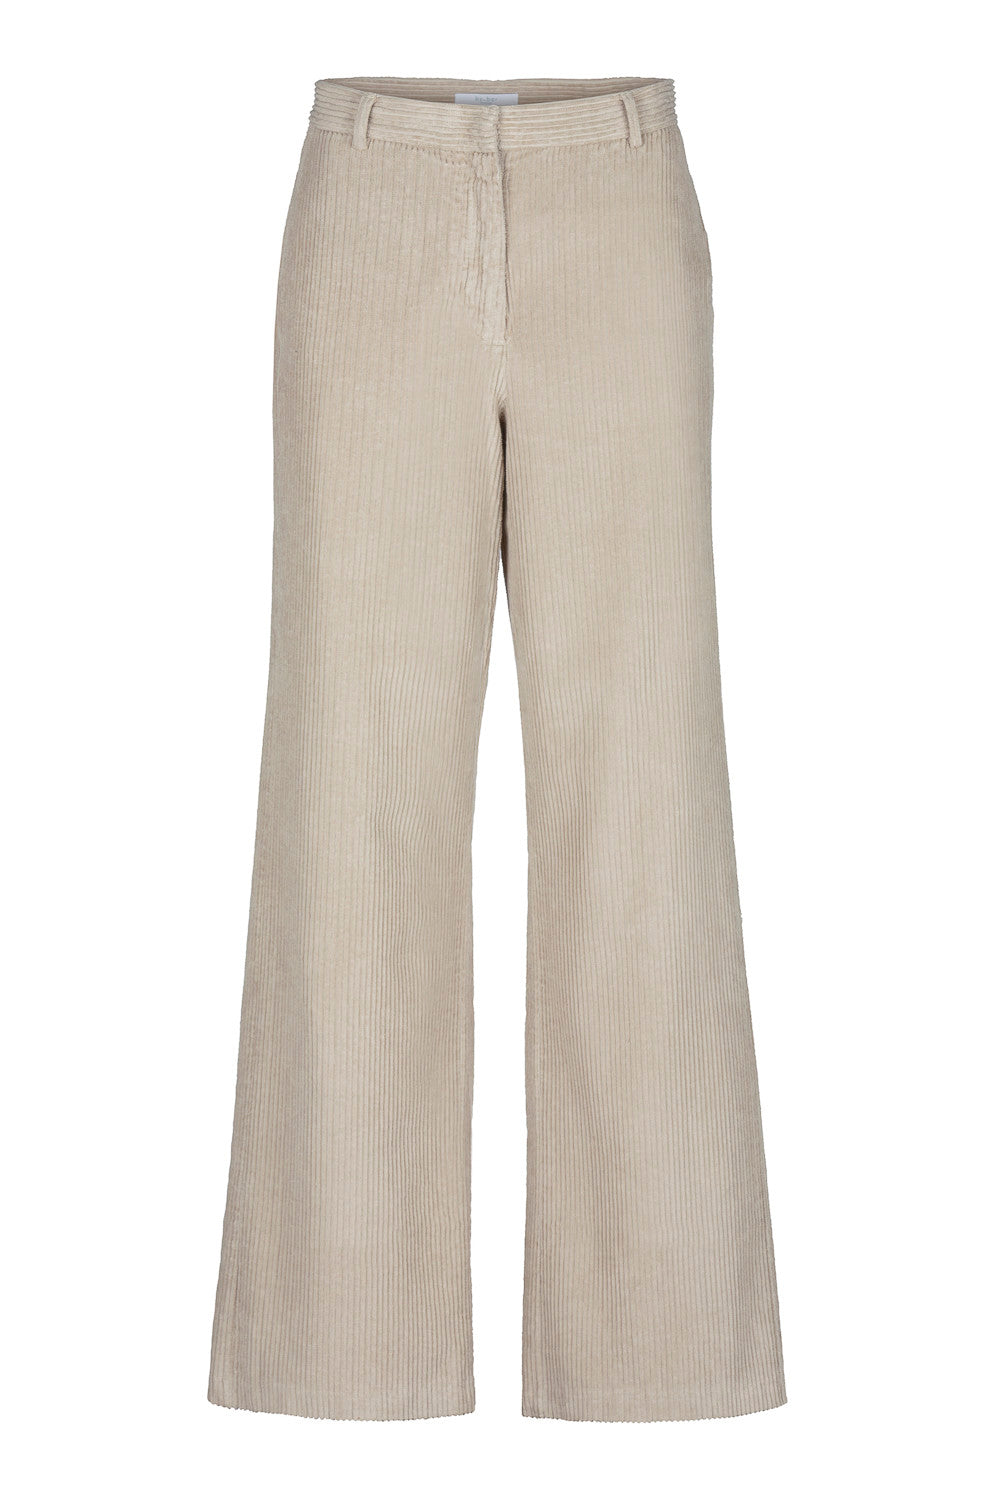 By-Bar reine pant silver stone